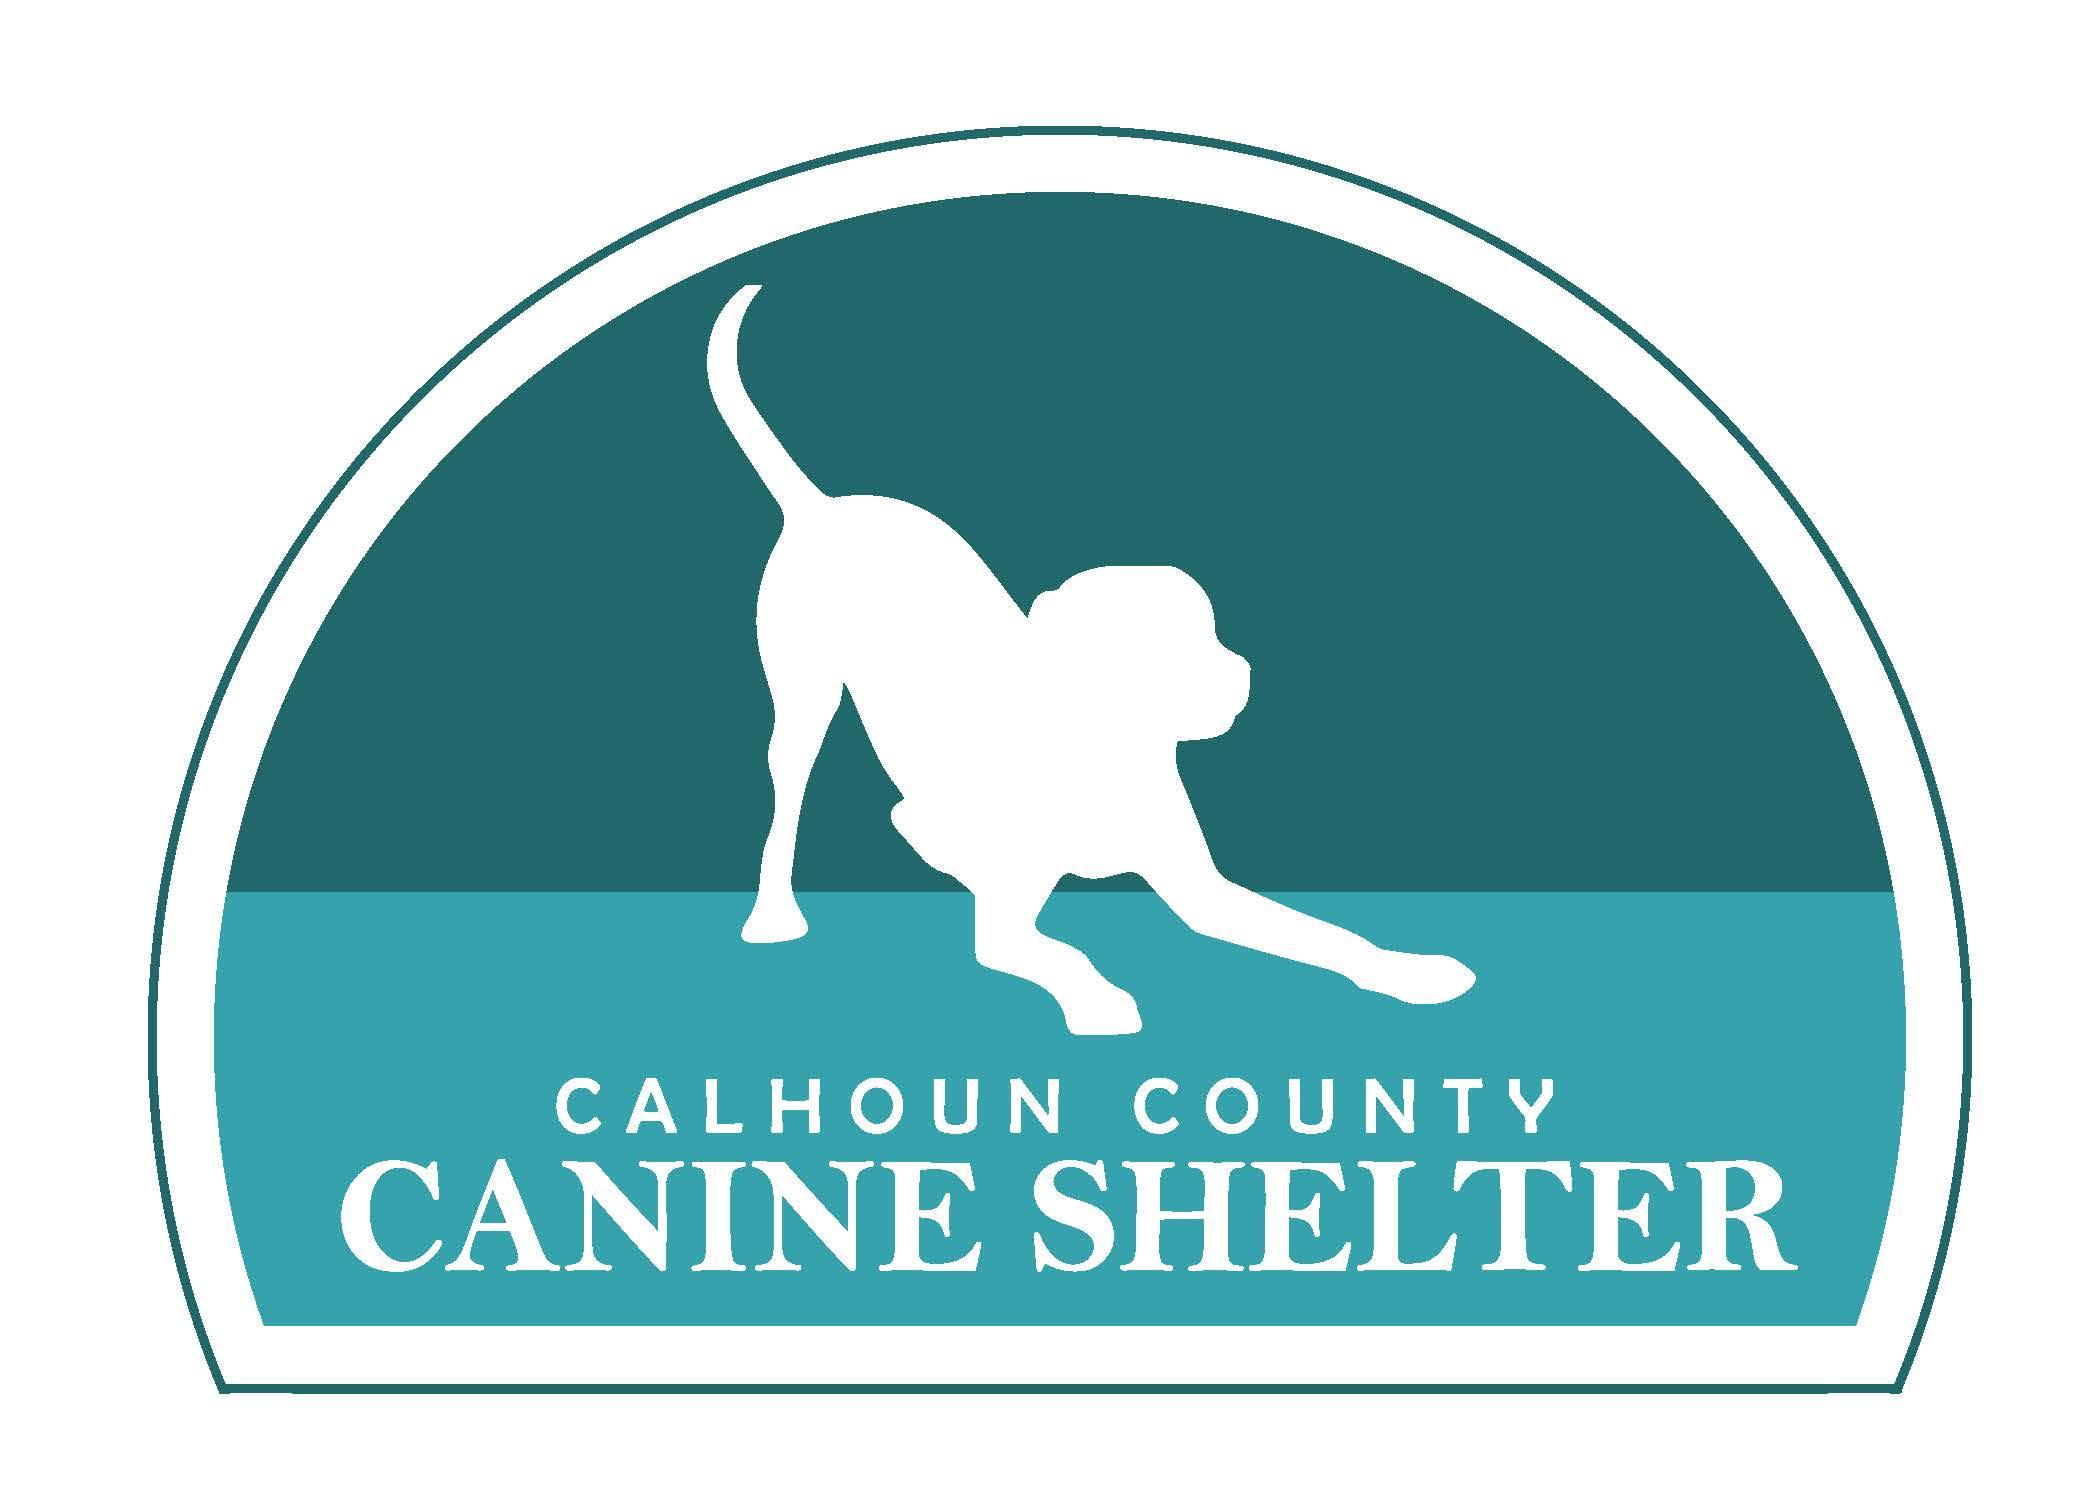 Calhoun Co. Canine Shelter